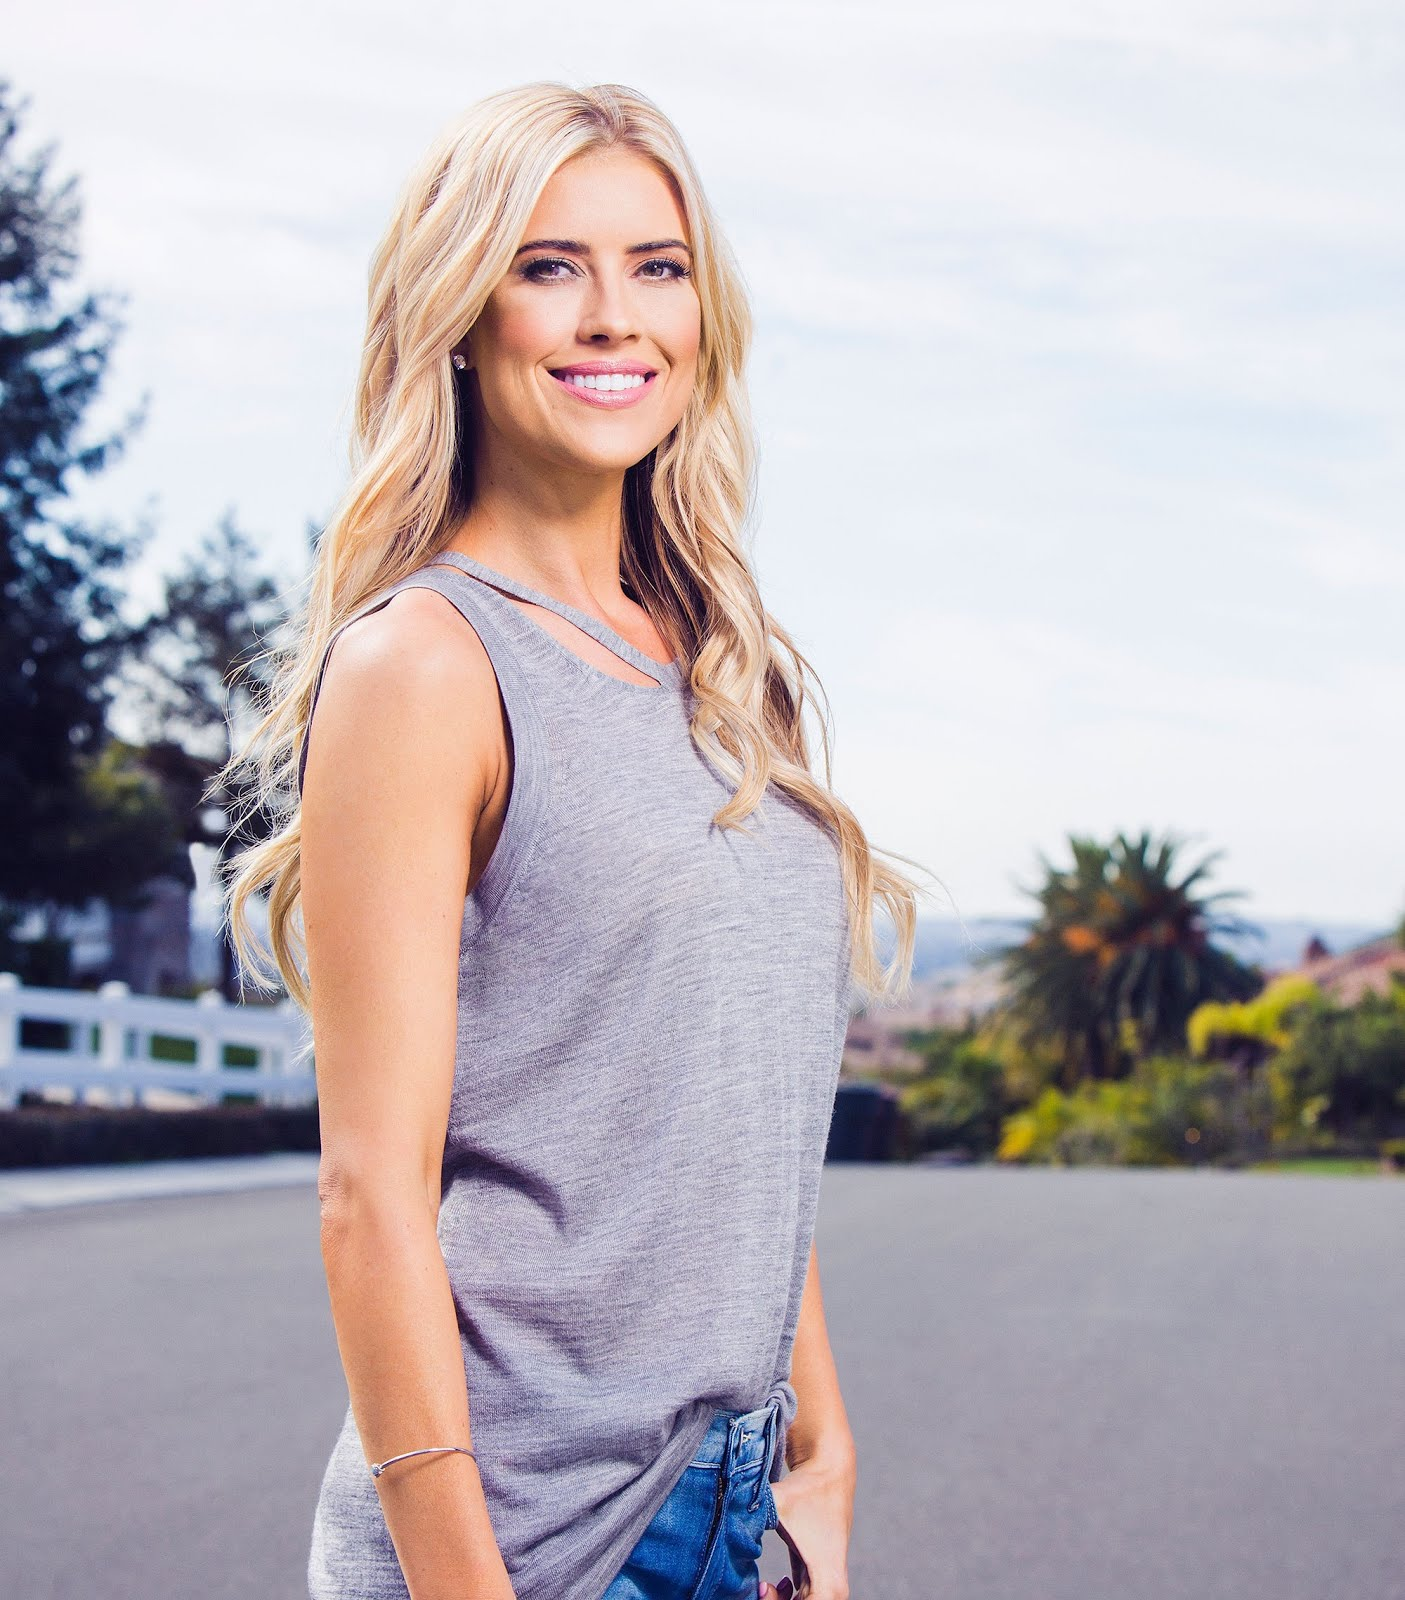 Awesome Christina El Moussa Diet /wiki / Profile / Biography